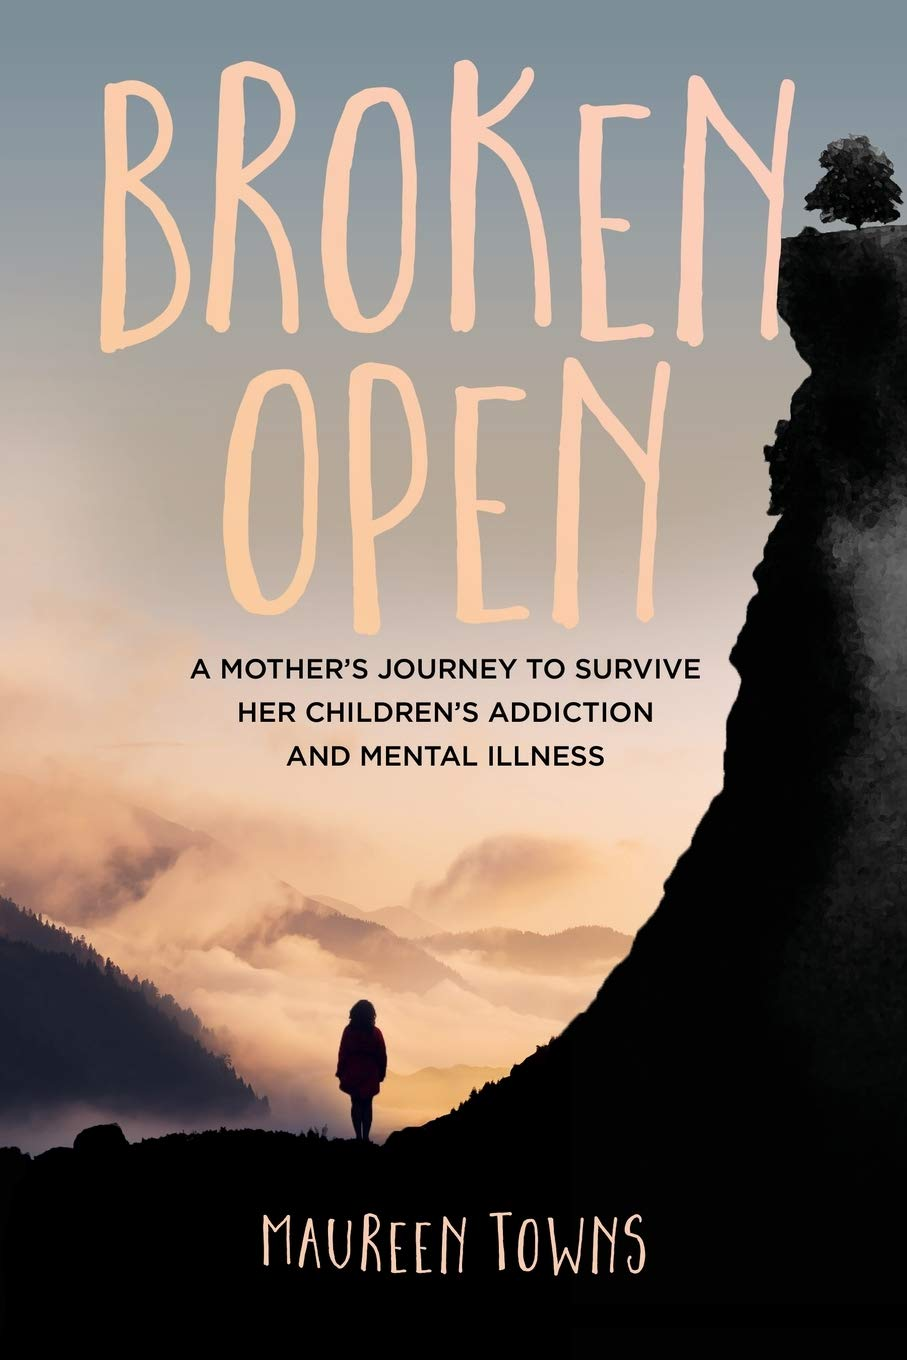 Broken Open: A Mother's Journey to Survive Her Children's Addiction and Mental Illness